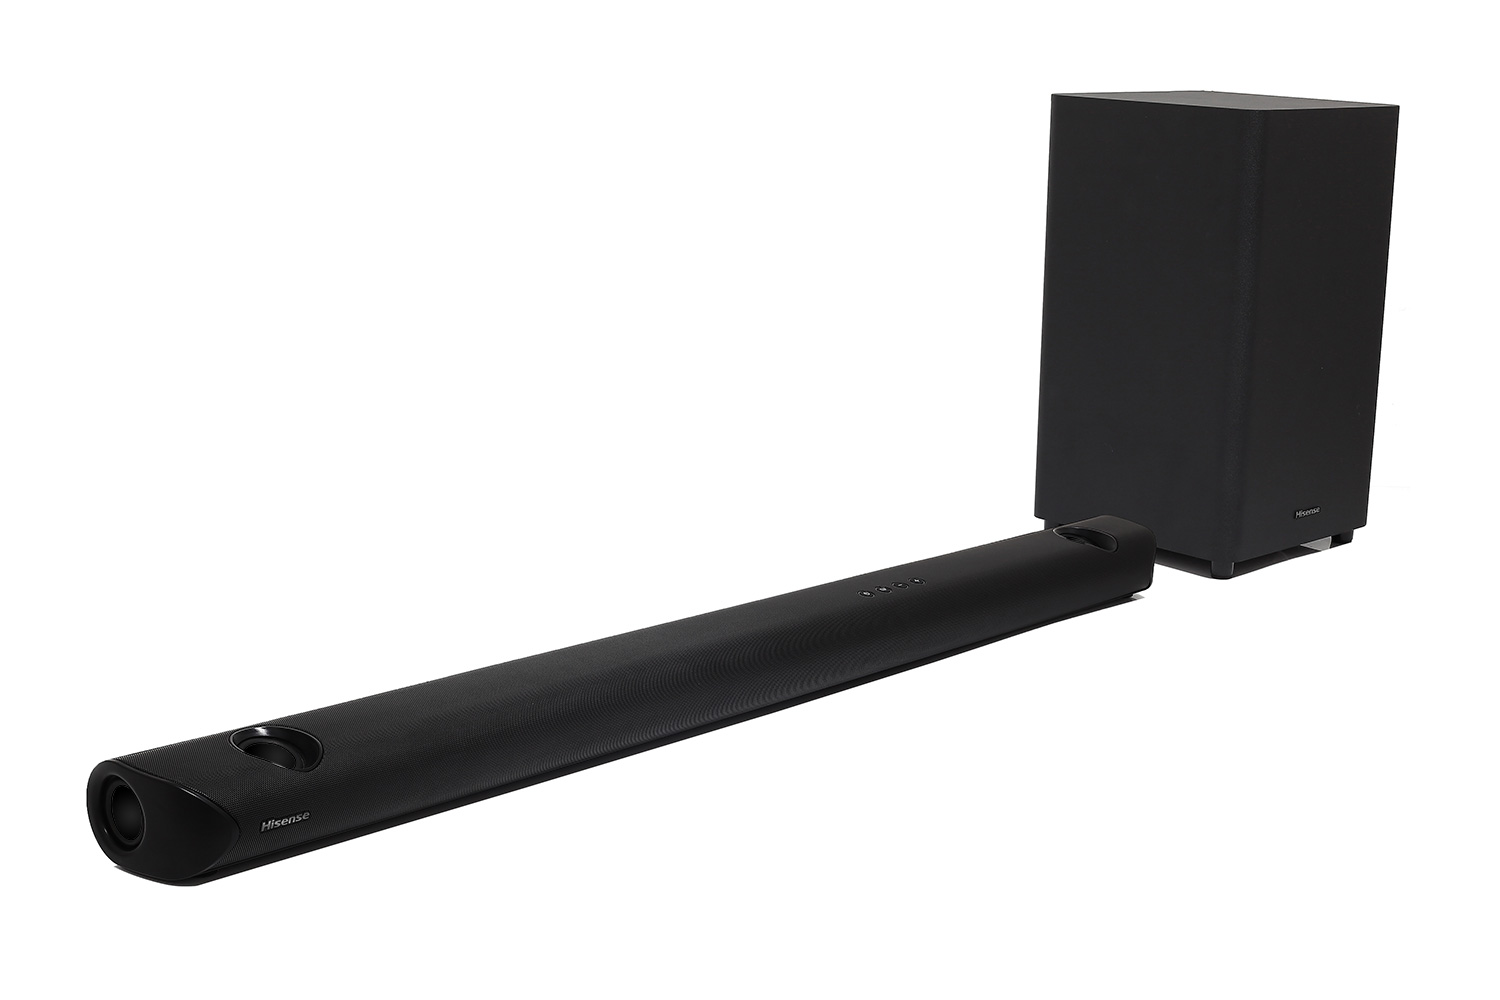 Hisense is breaking into a new market with two sound bars